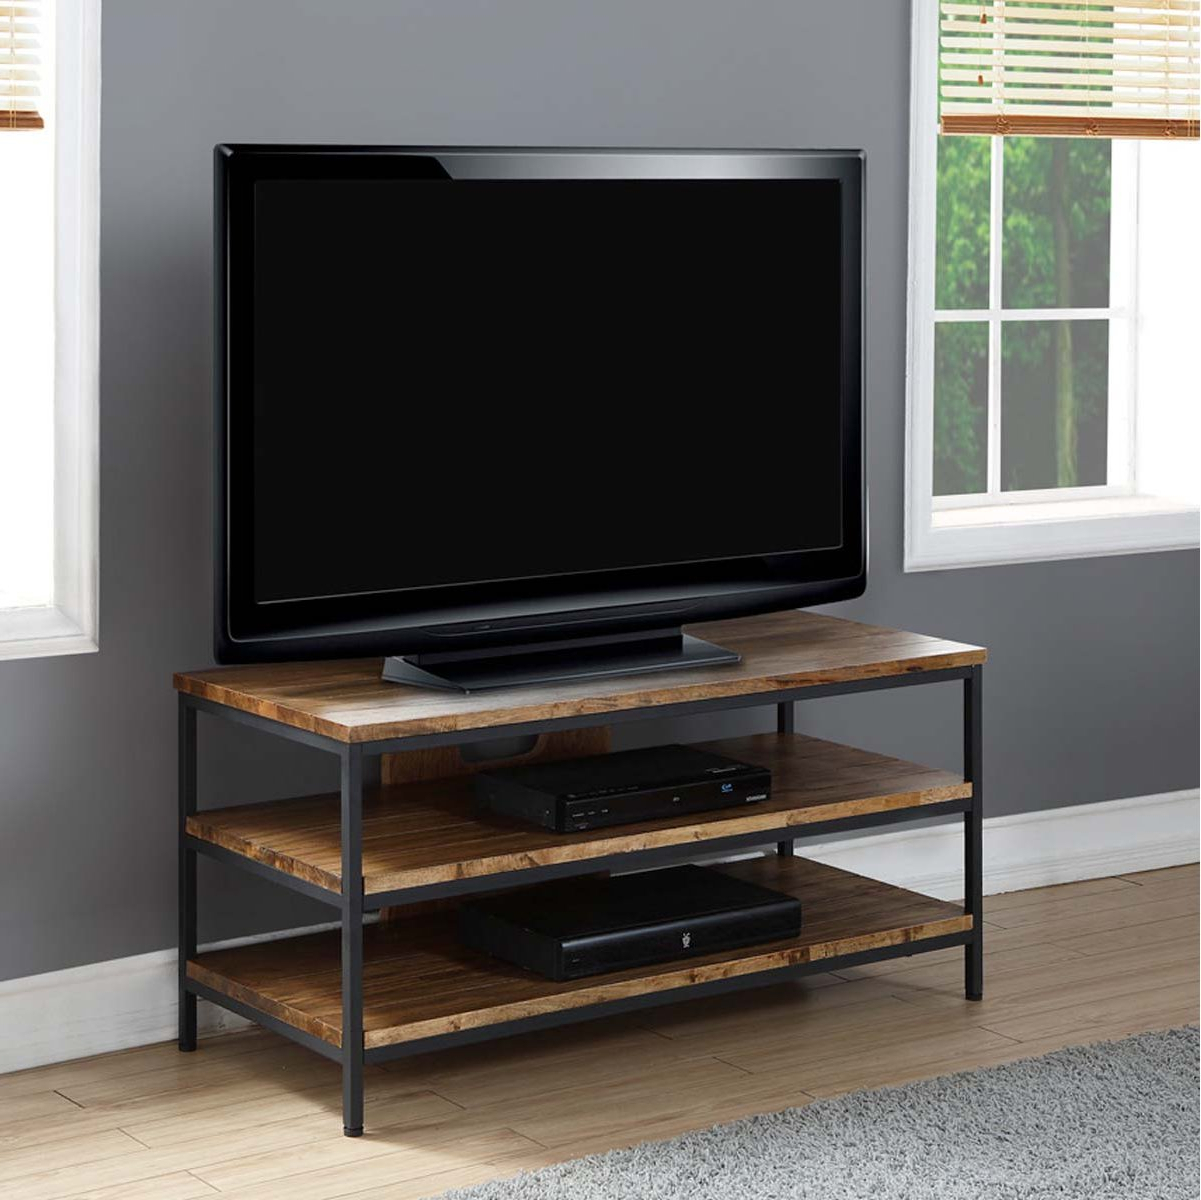 Favorite Solid Wood Oak Rustic Tv Stand Regarding Blaire Solid Wood Tv Stands For Tvs Up To (View 19 of 20)